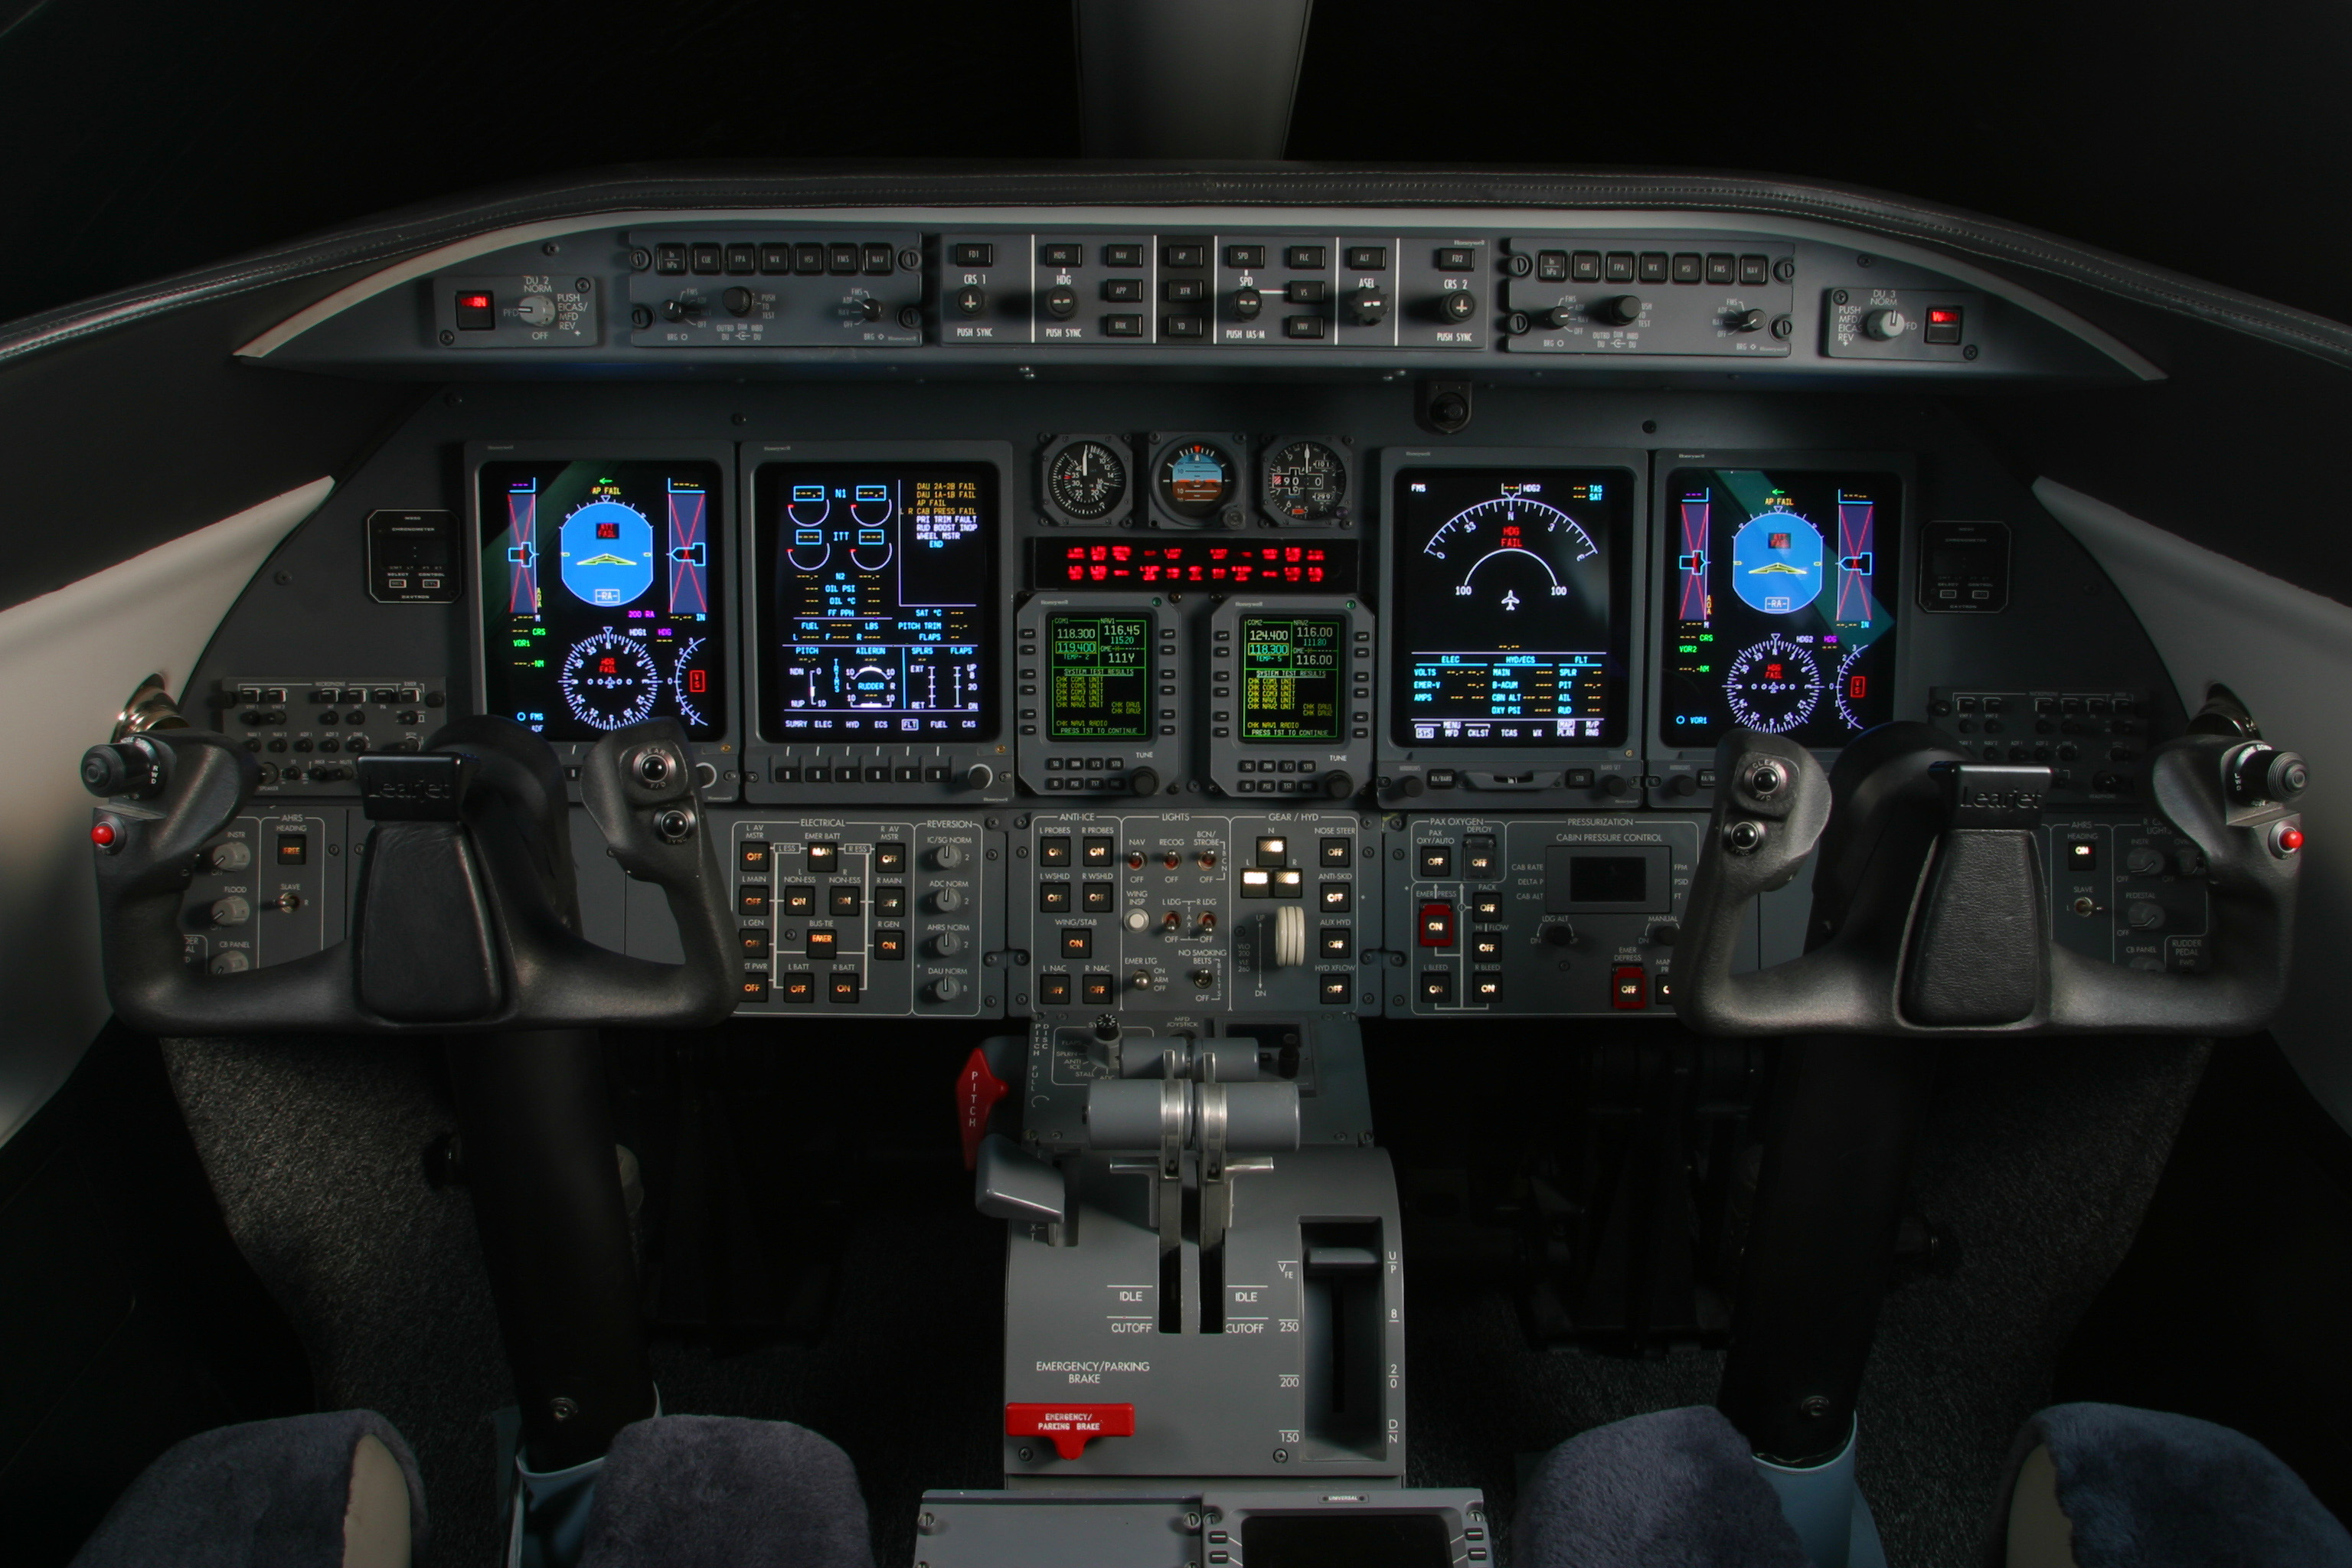 aircraft-cockpit-college-girks-fucking